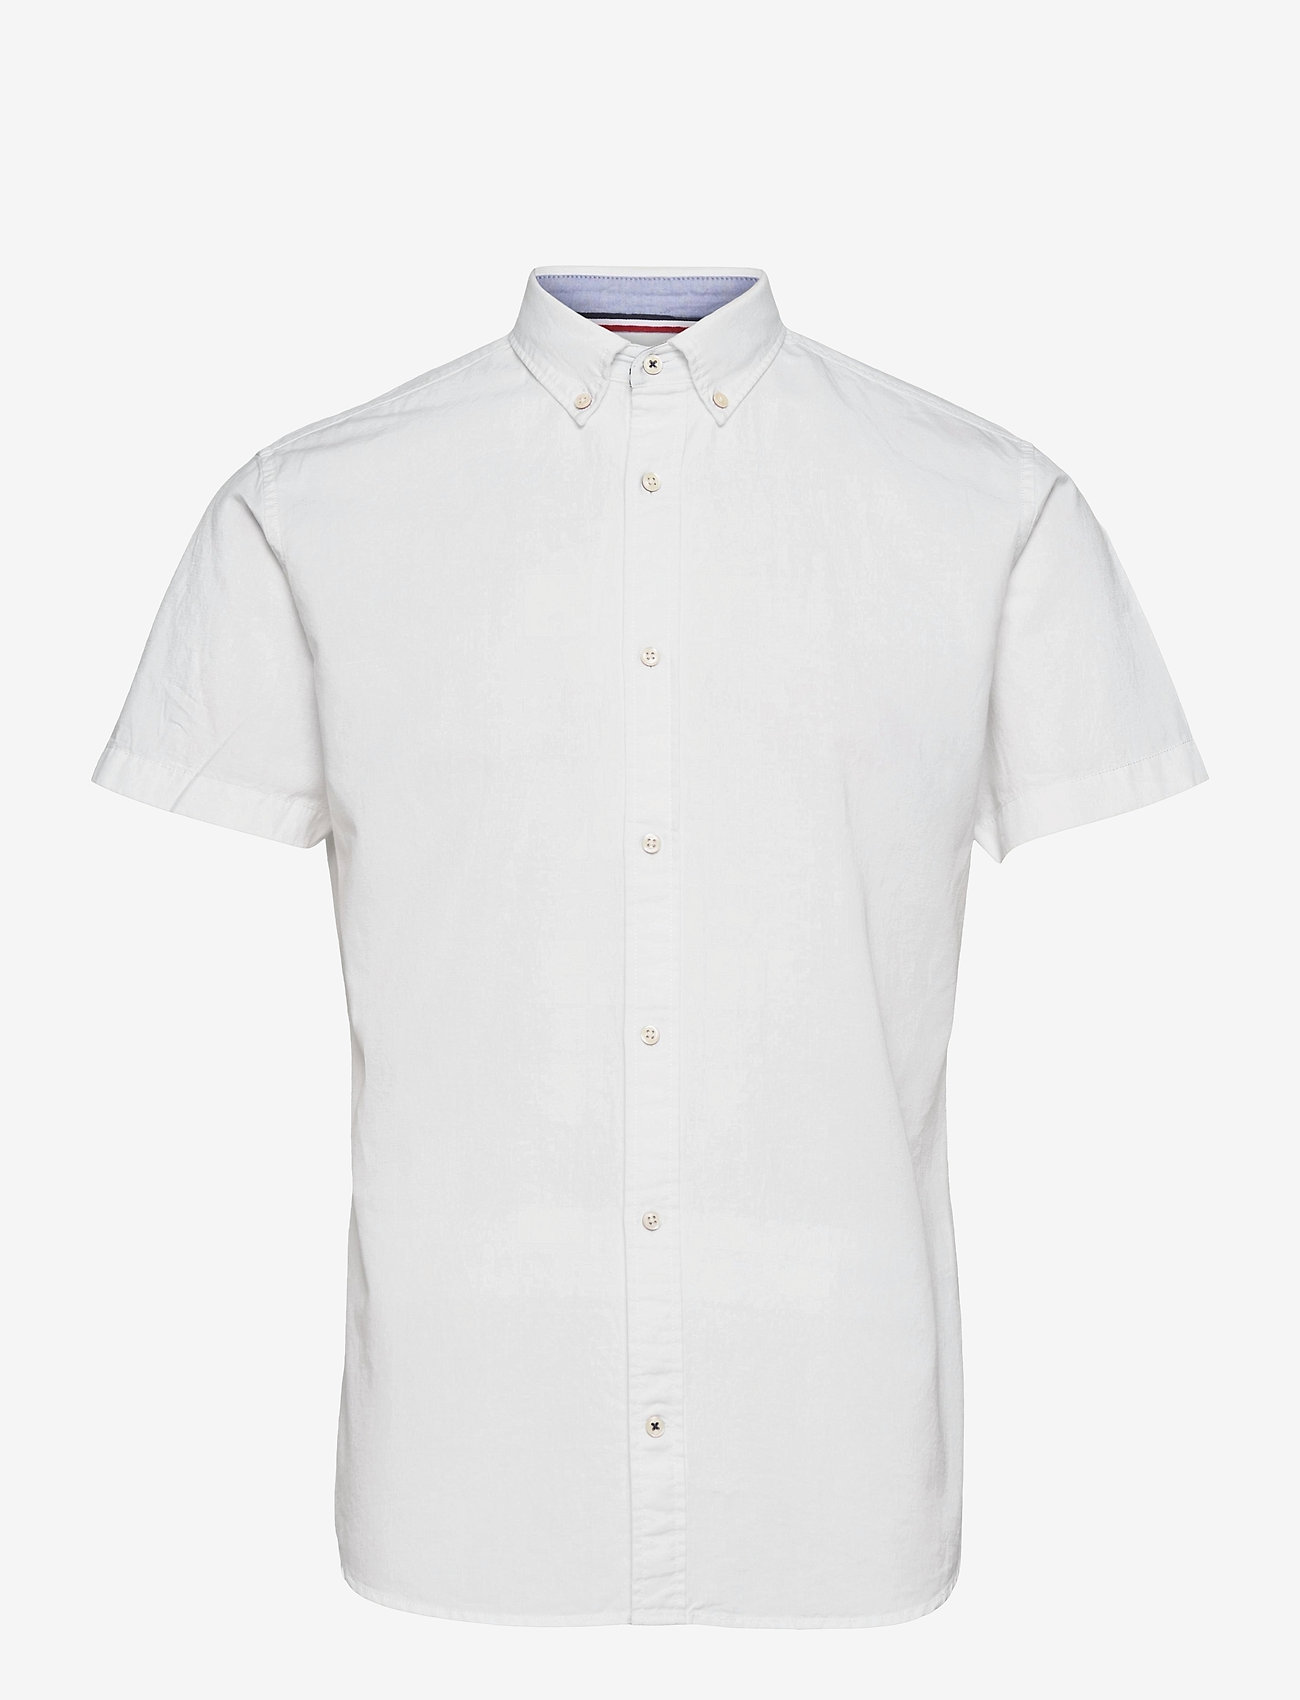 Jack & Jones - JJESUMMER SHIRT S/S S21 STS - basic skjorter - white - 0